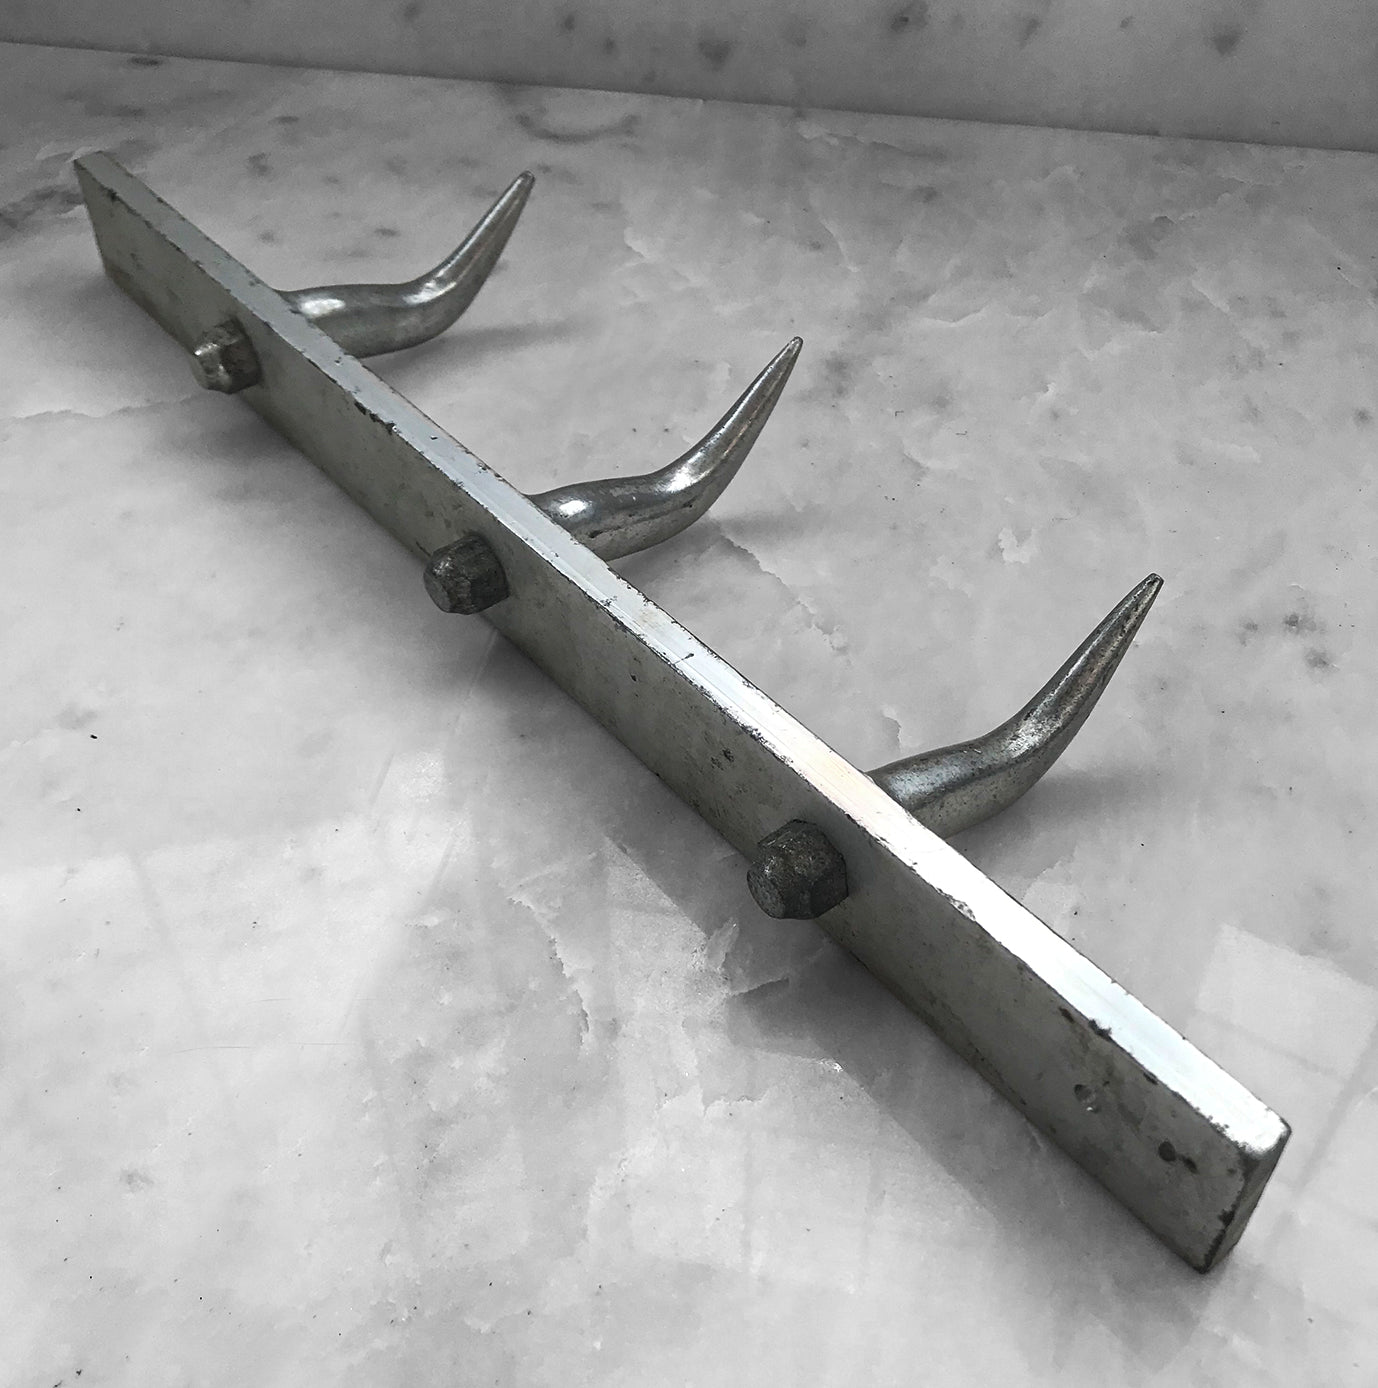 Nice Vintage Meat Hook Rack from Belgium. The rack is made of aluminium and has 3 substantial hooks that are bolted from the back - SHOP NOW - www.intovintage.co.uk